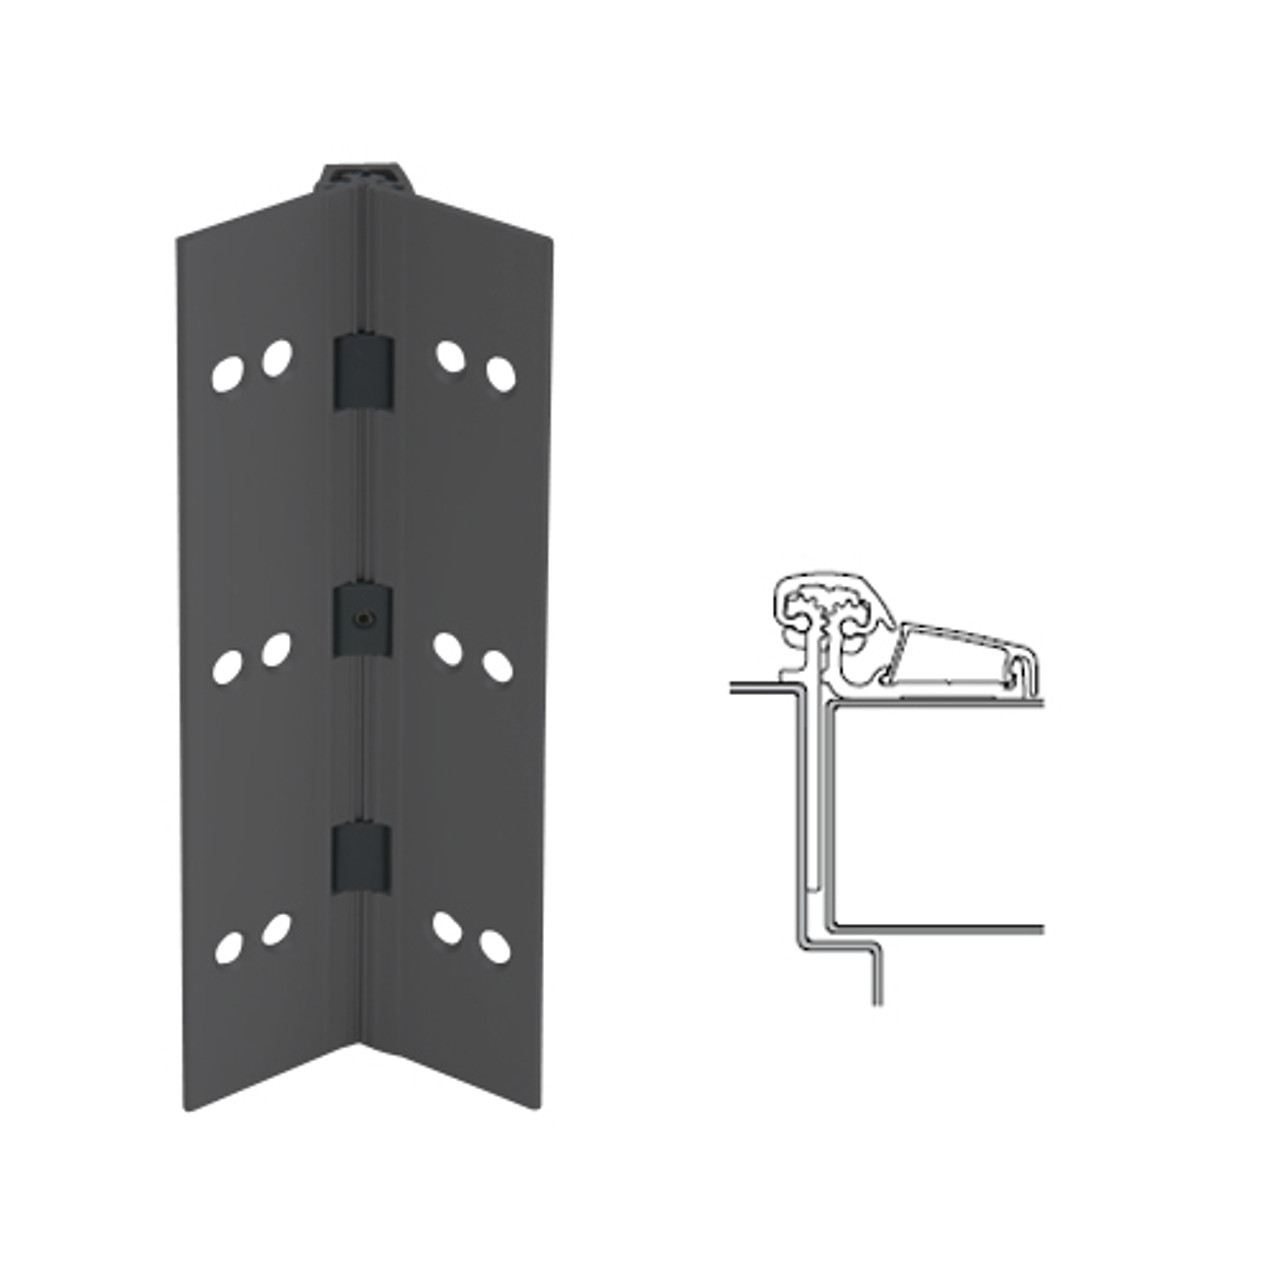 053XY-315AN-83-TFWD IVES Adjustable Half Surface Continuous Geared Hinges with Thread Forming Screws in Anodized Black